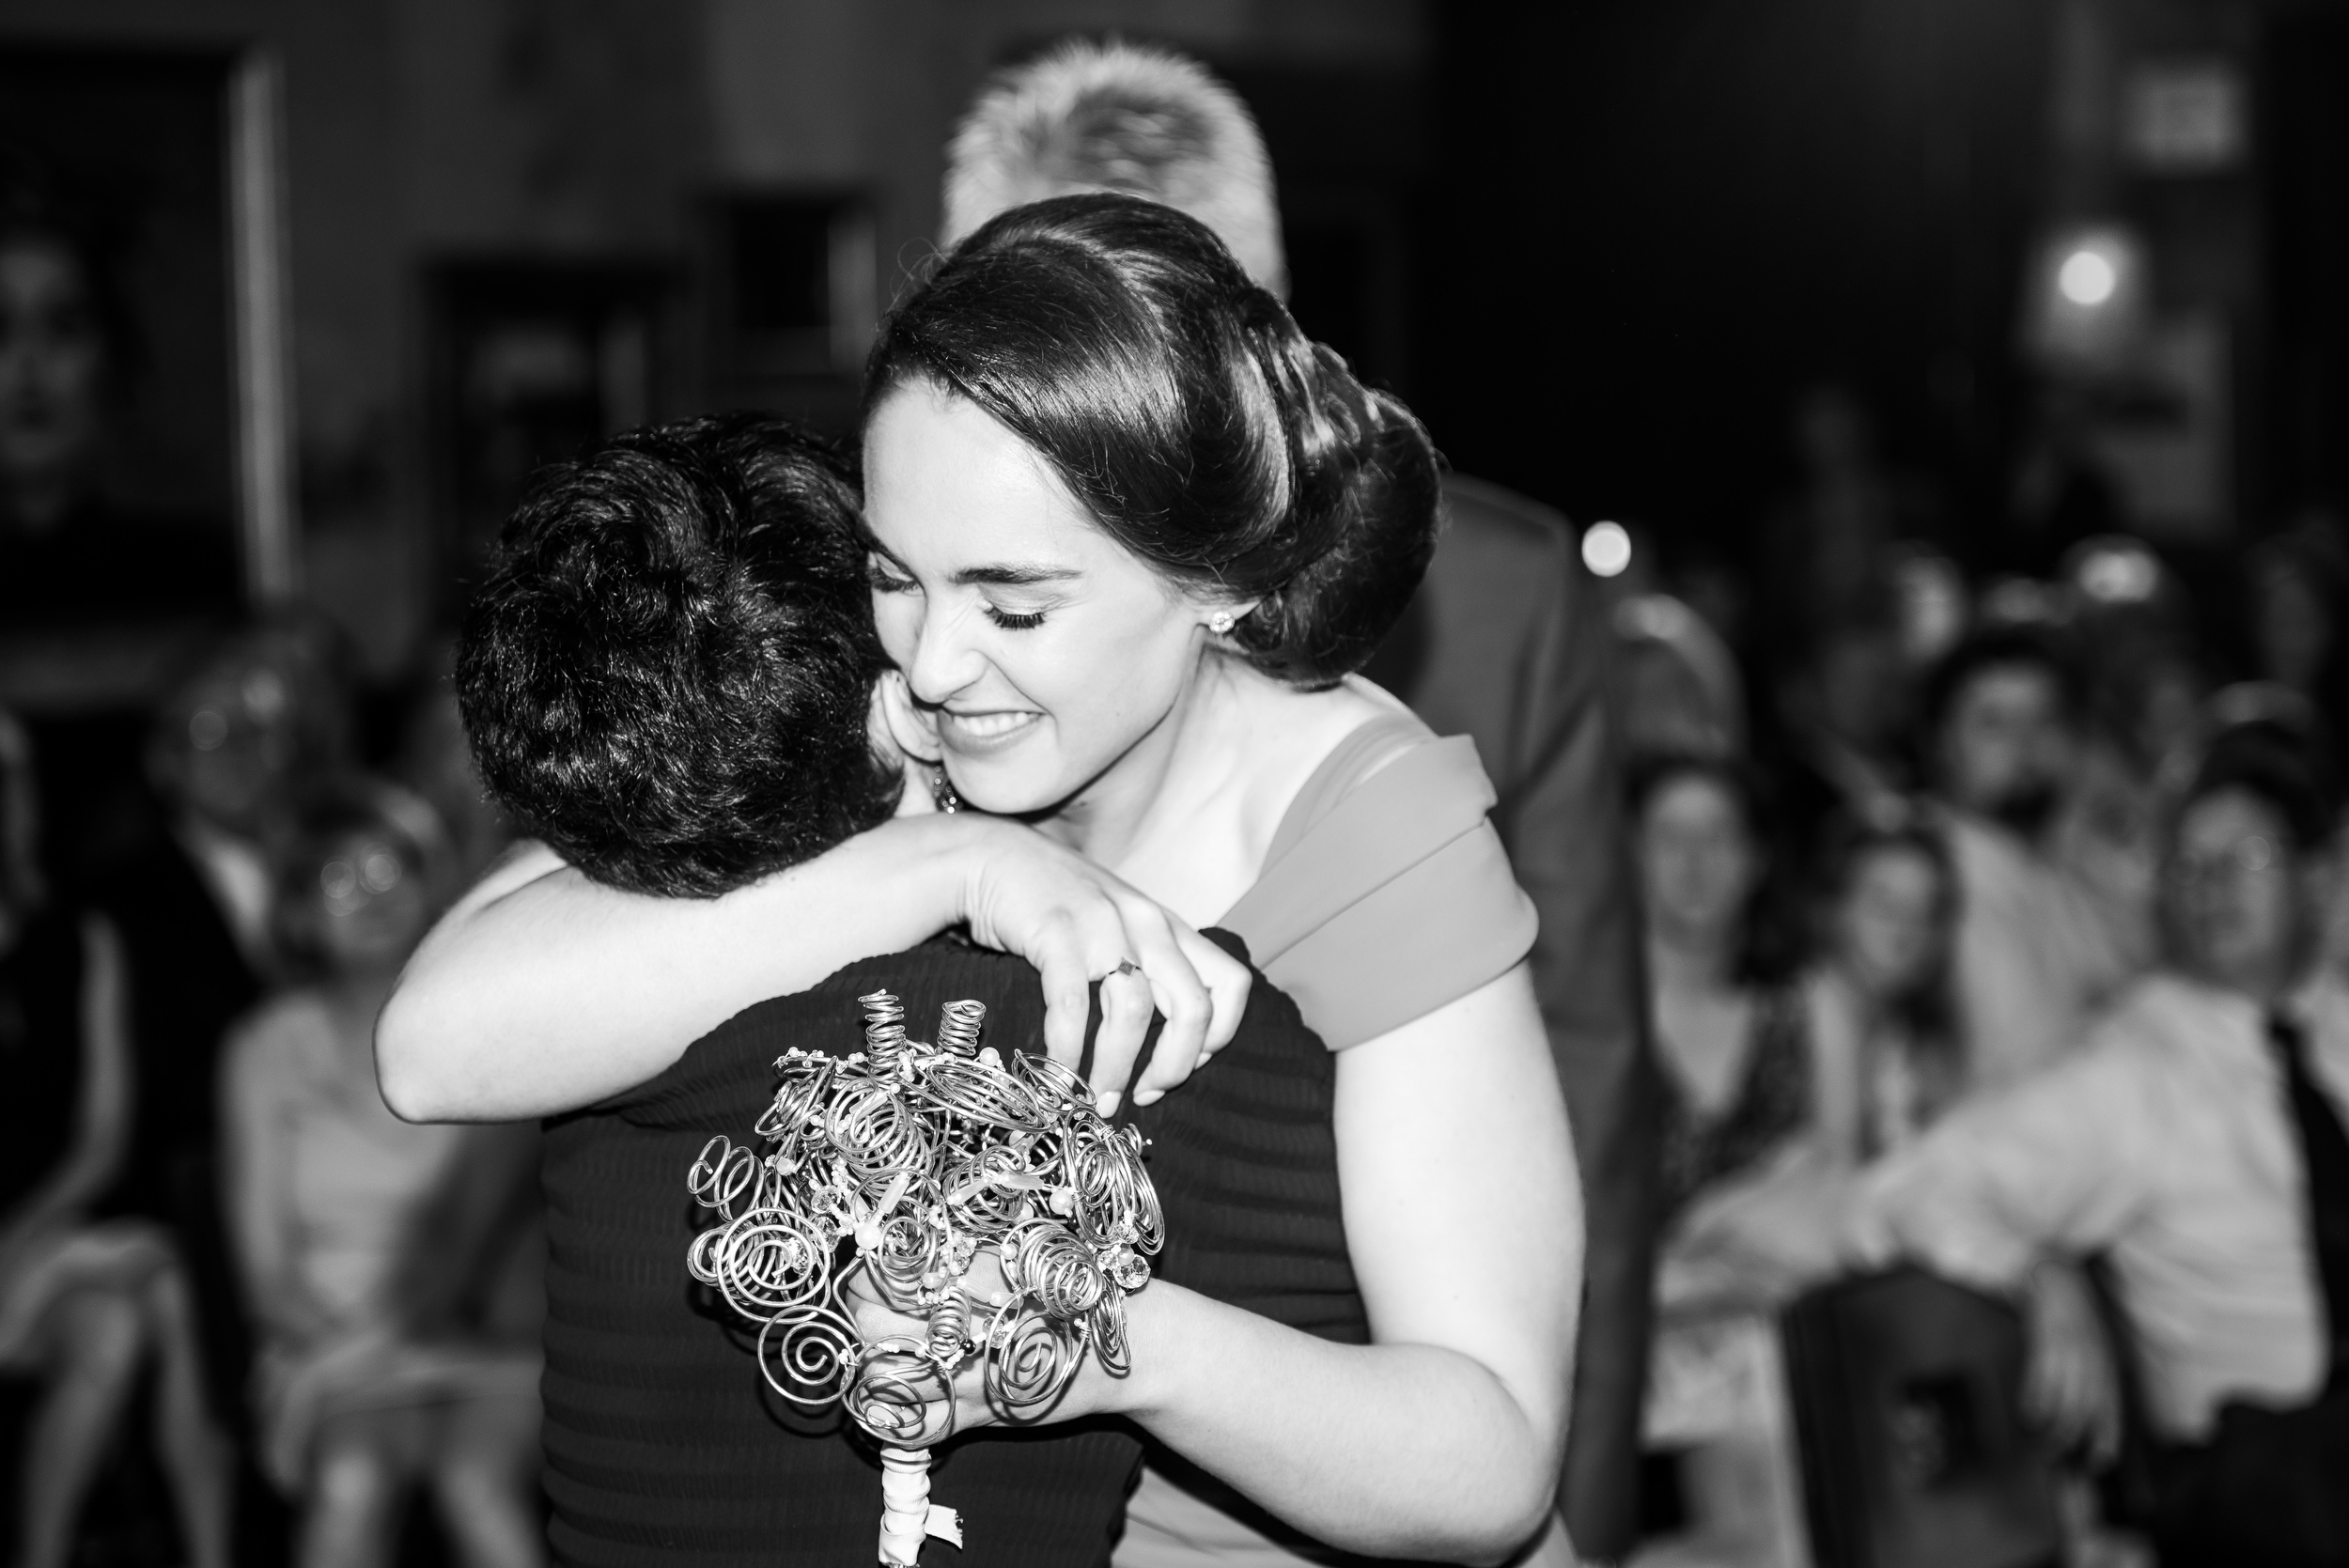 Wedding ceremony photos: Carnivale Chicago wedding captured by J Brown Photography